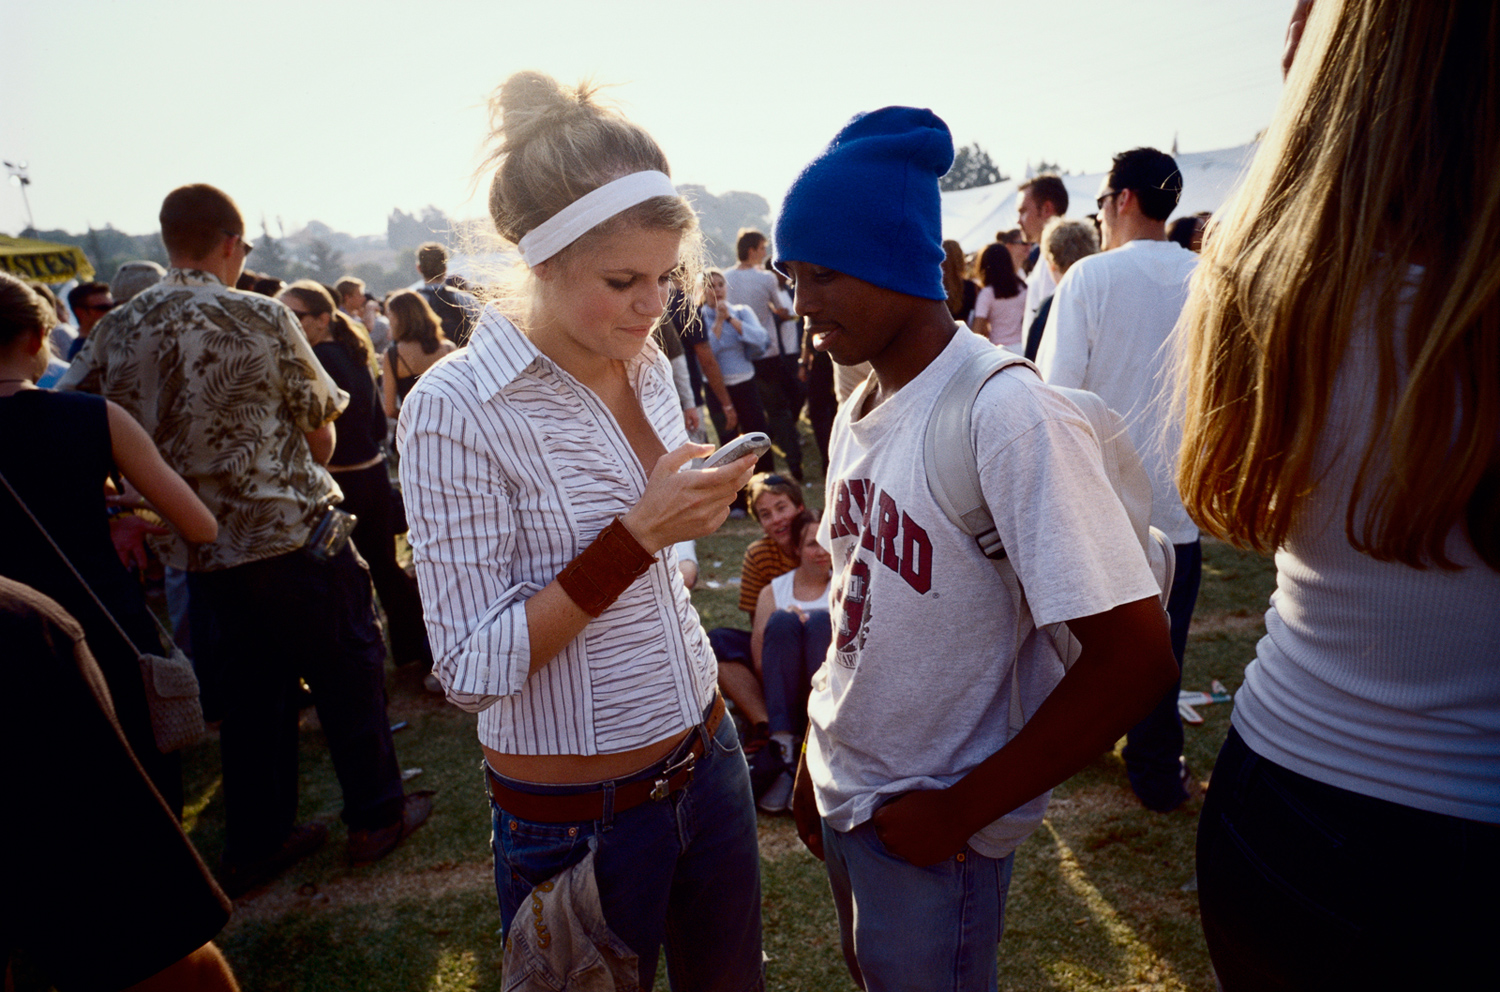 Unidentified youths socialize at a  festival in Auckland Park a suburb in Johannesburg, South Africa, May 2002.